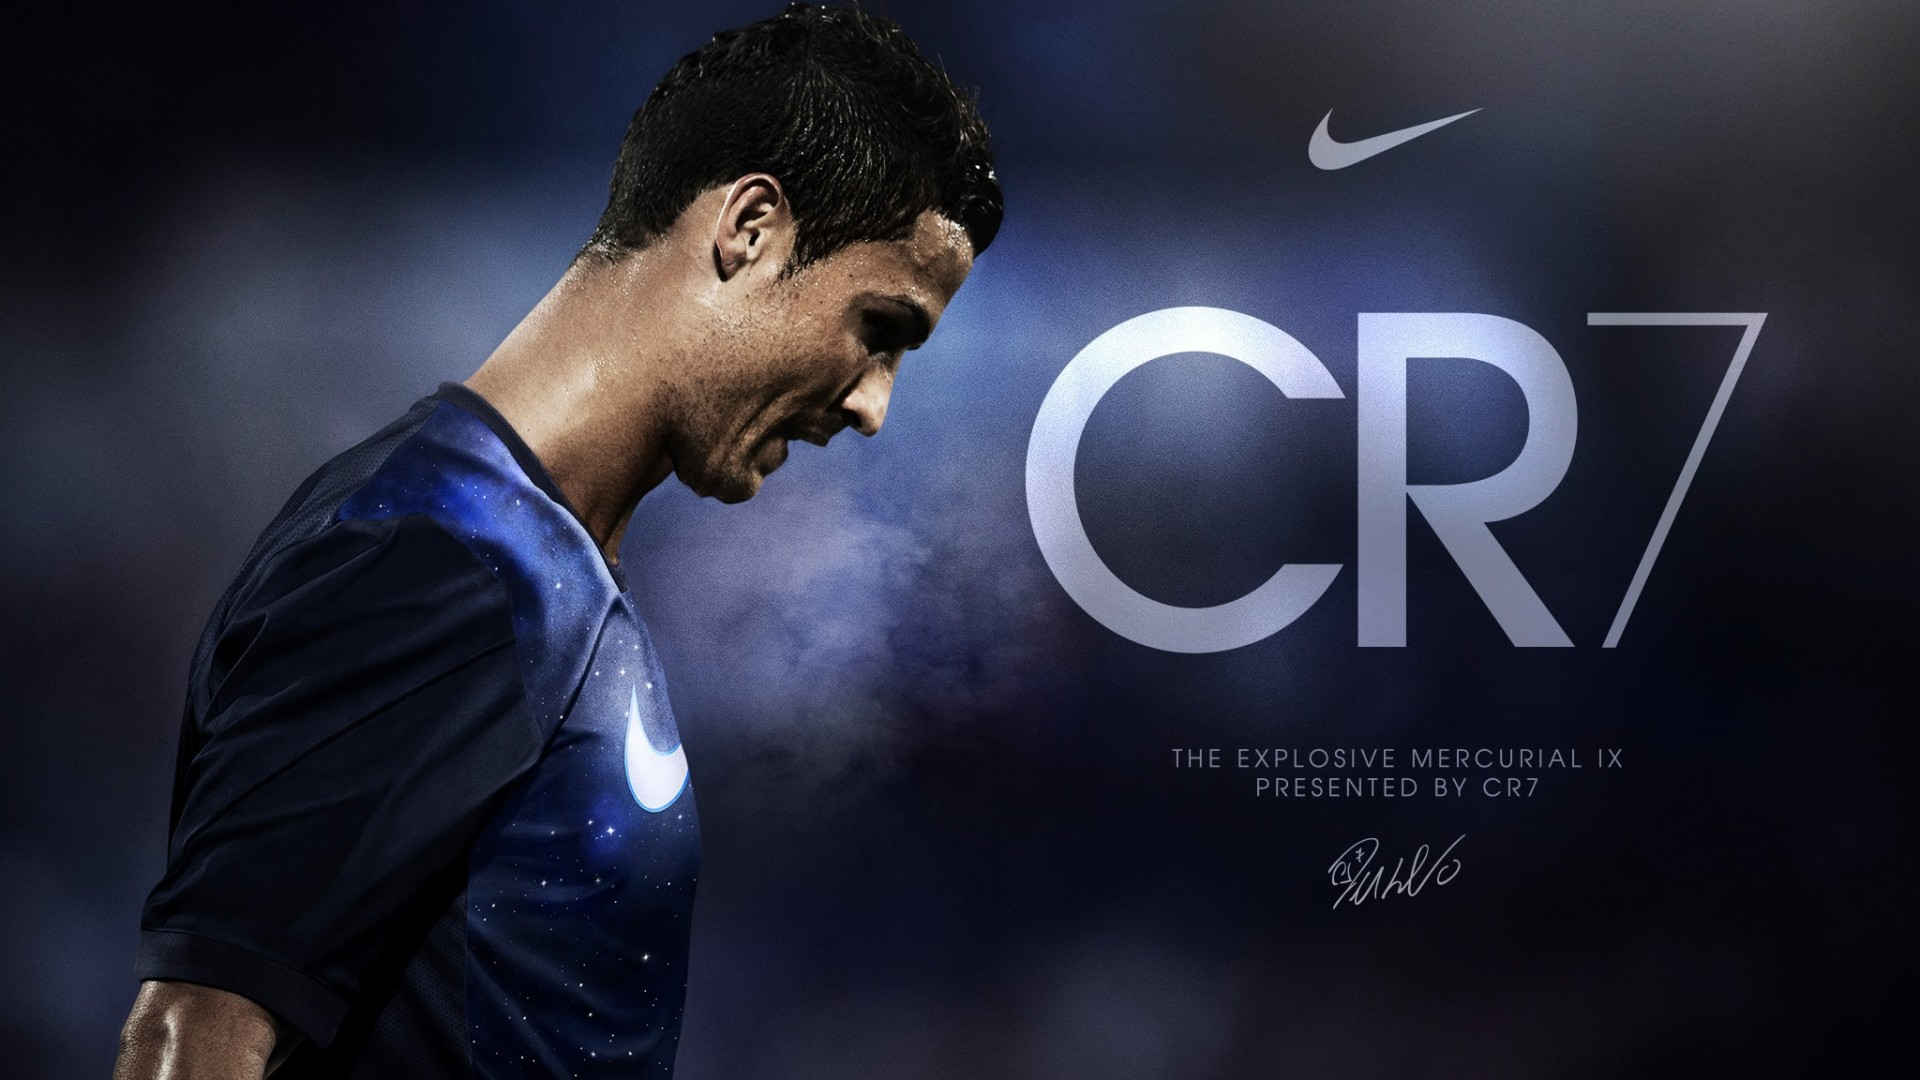 Cr7 Wallpaper Iphone Cr7 Mercurial Wallpaper Cristiano Ronaldo Wallpapers